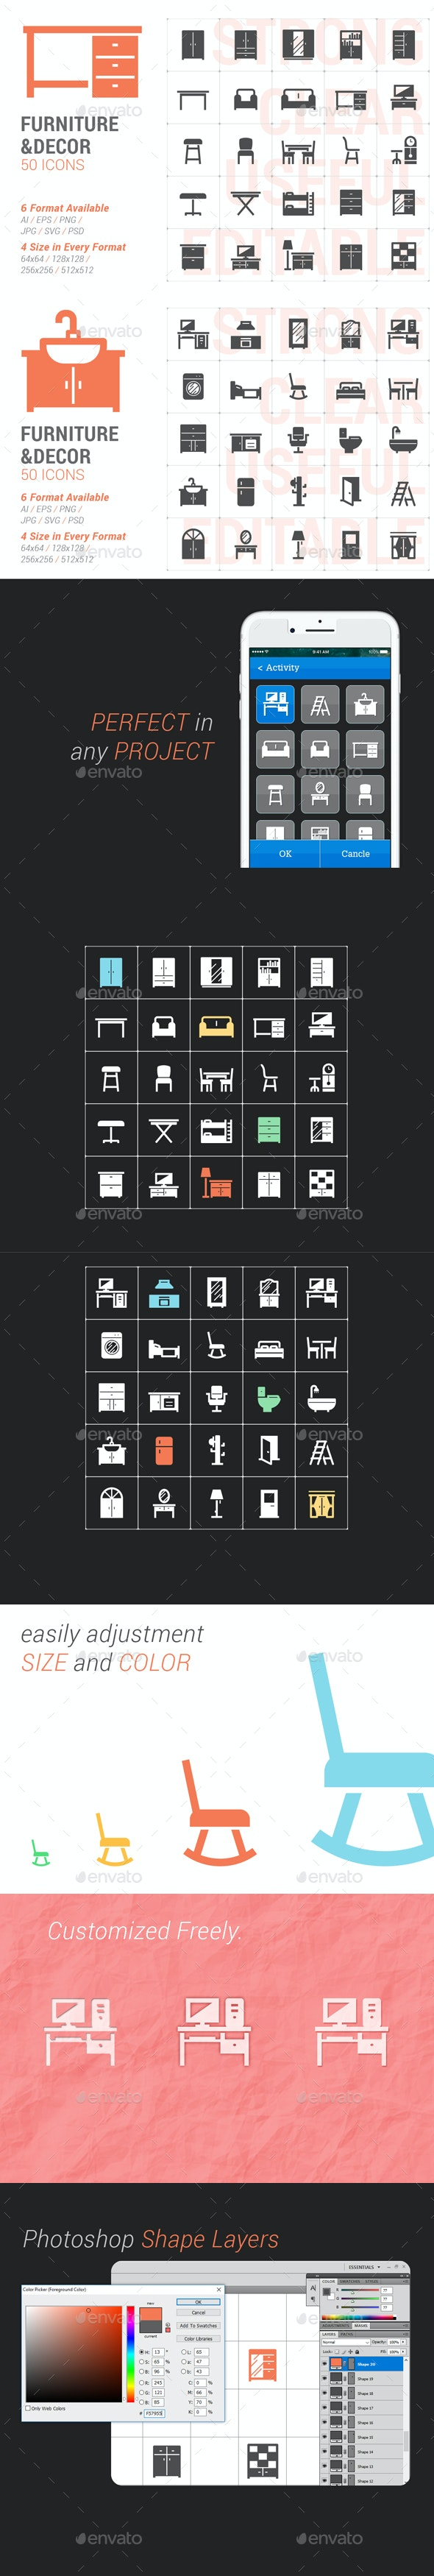 Furniture and Decor Filled Icon - Objects Icons